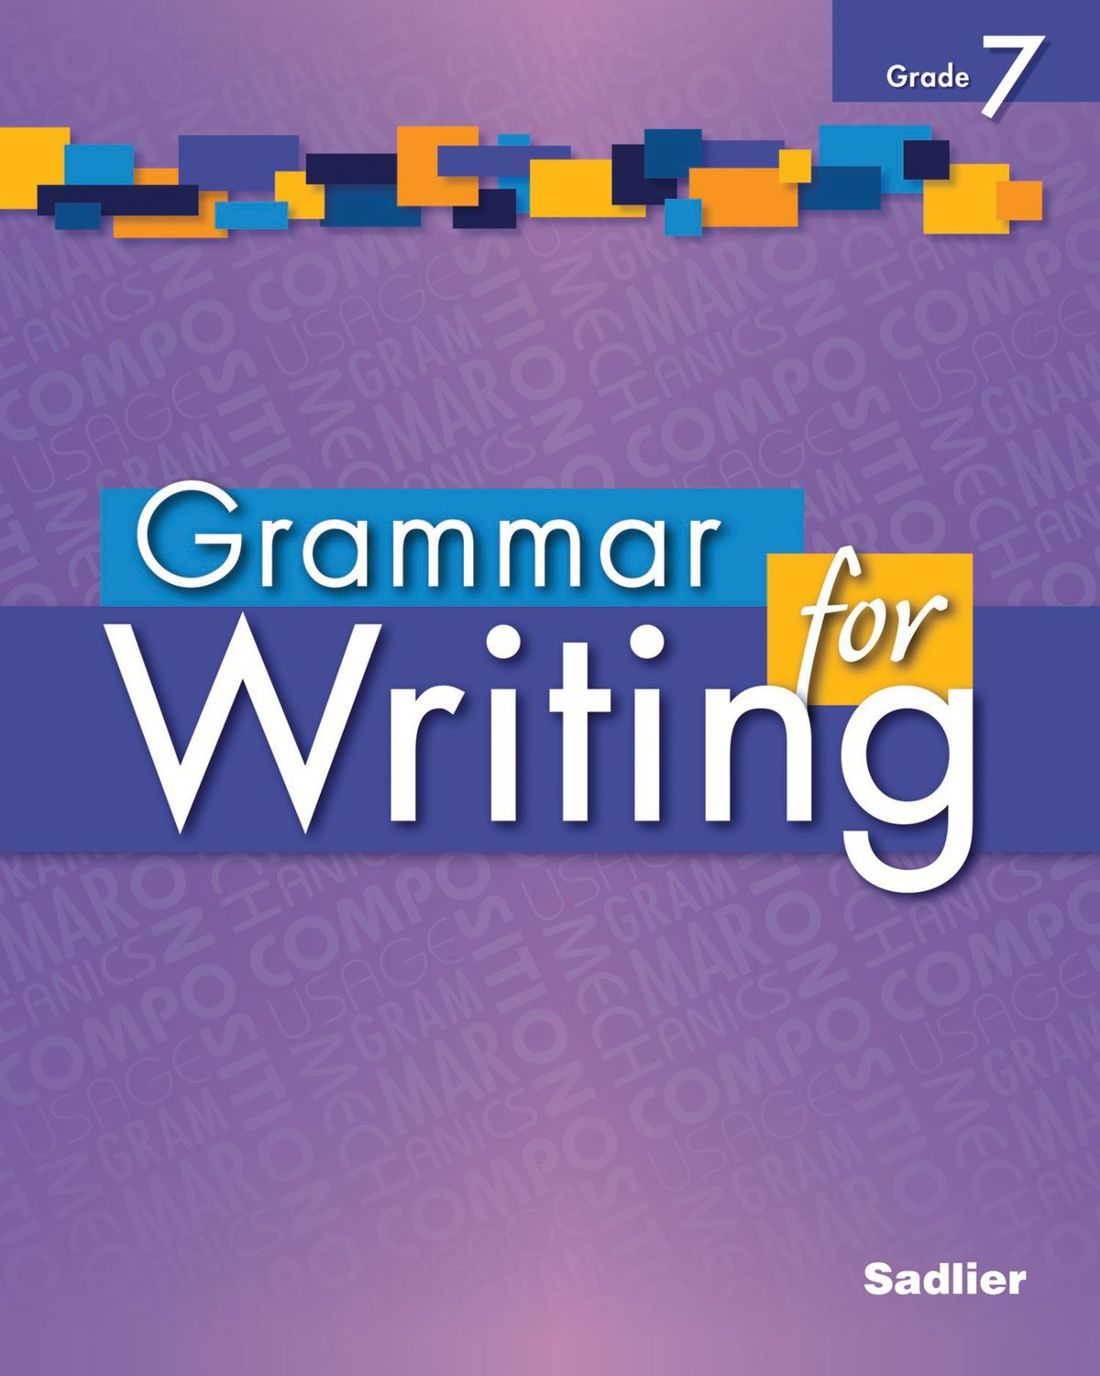 Grammar for Writing, Level Purple (Grade 7), Student Edition